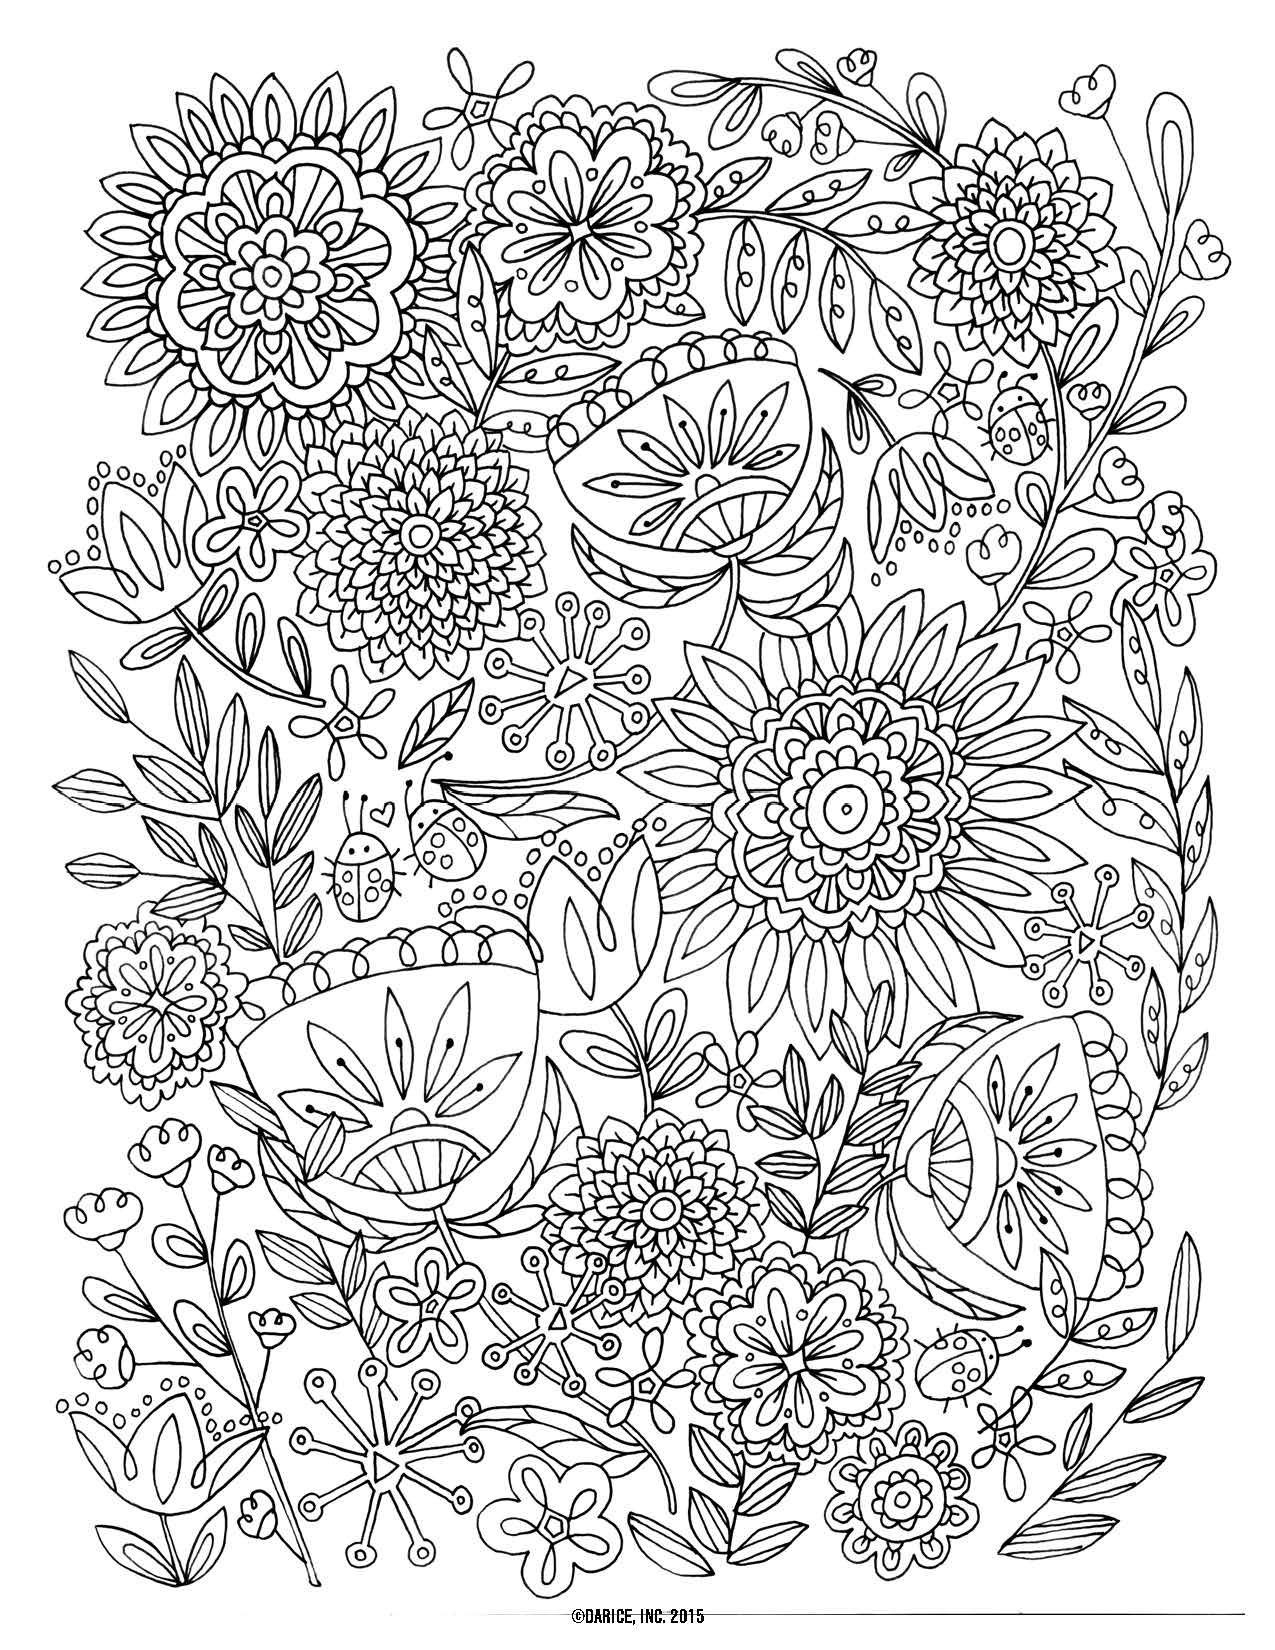 labor day coloring pages Download-Labor Day Coloring Pages Free Coloring Pages Elegant Printable Fresh S S Media Cache Ak0 Pinimg 8-h